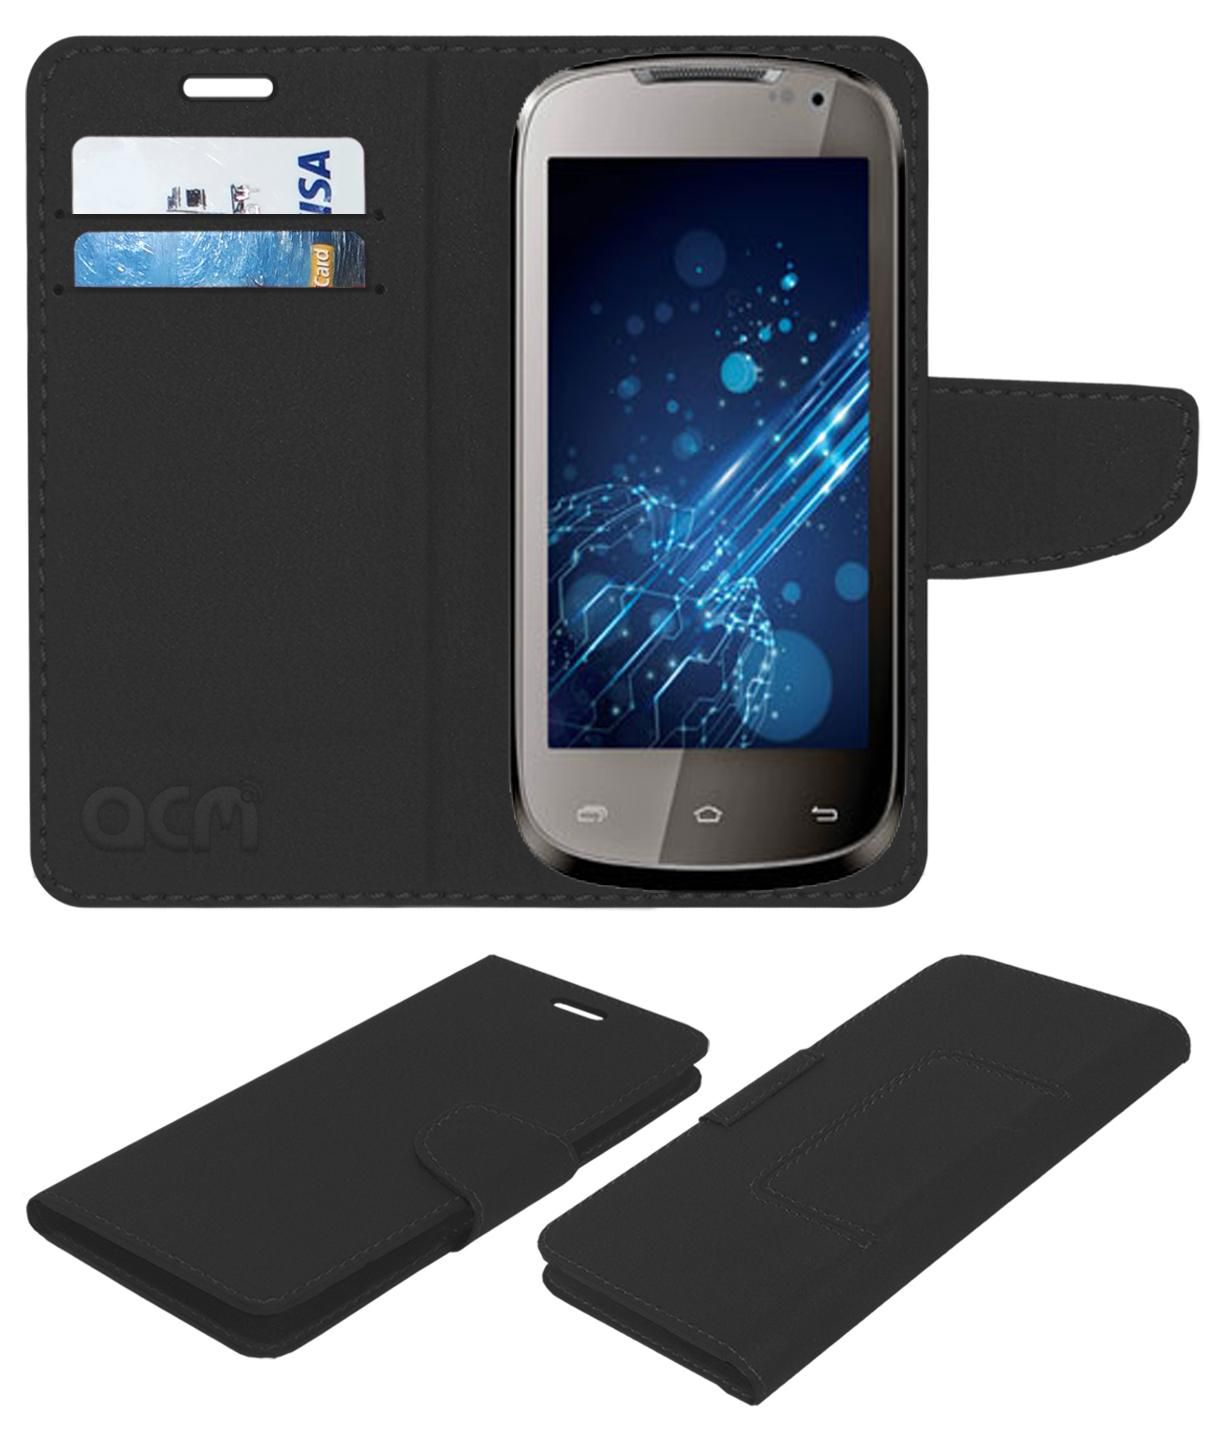 Xolo A700 Flip Cover by ACM - Black